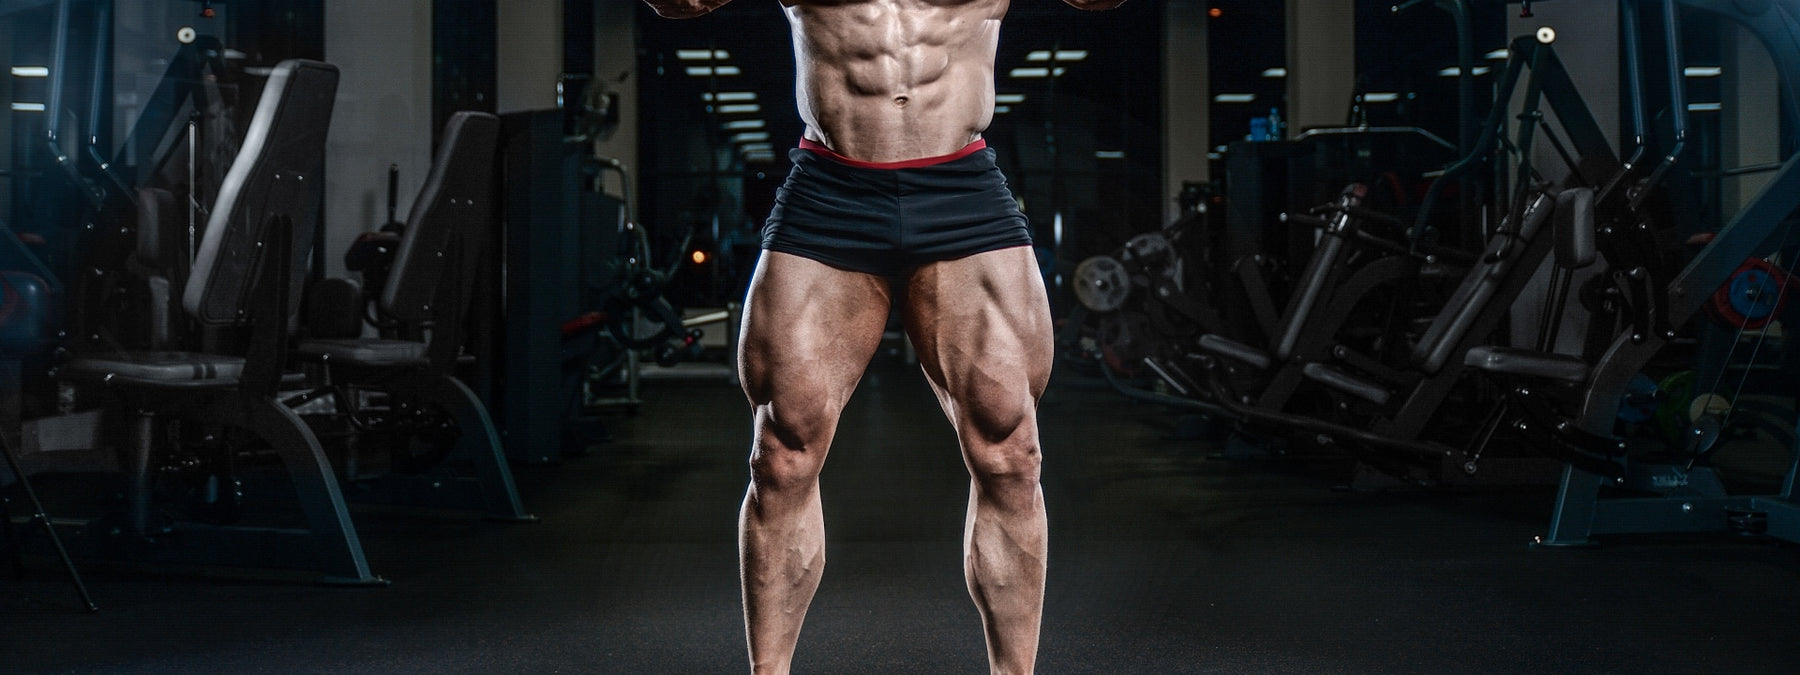 Advanced Quad Training - 5 Alternative Quadricep Exercises